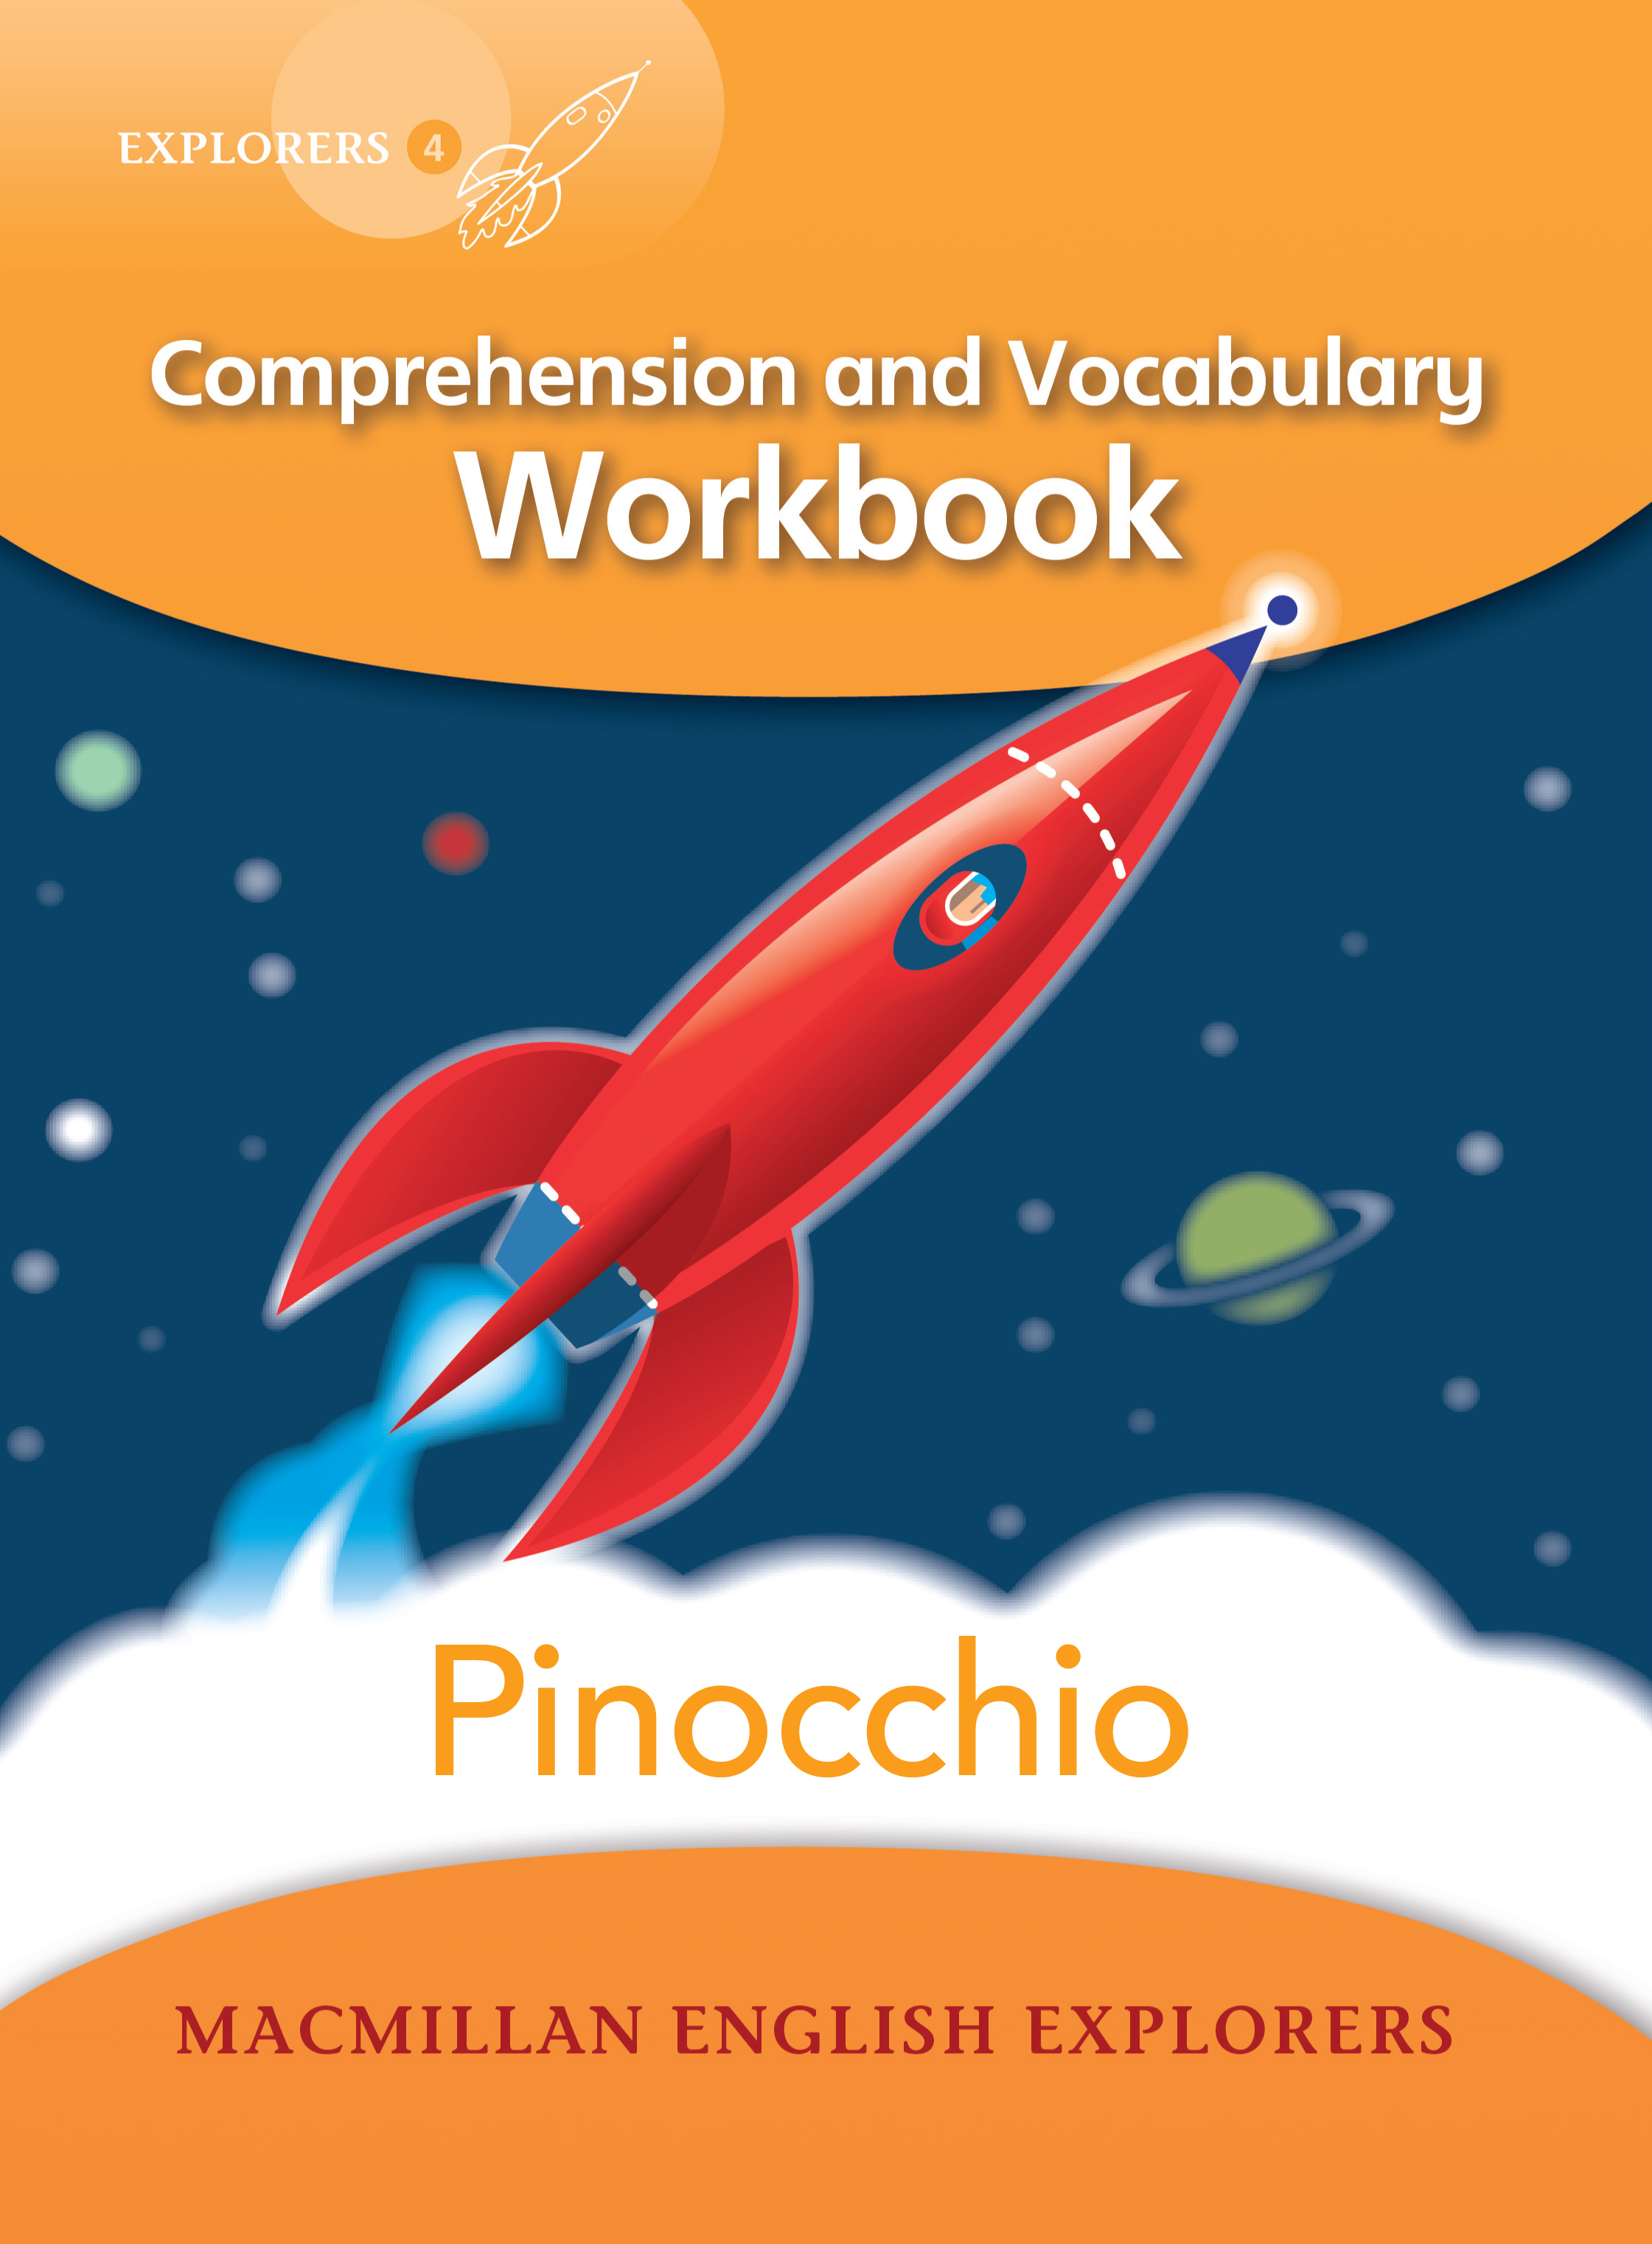 Explorers 4: Pinocchio Workbook